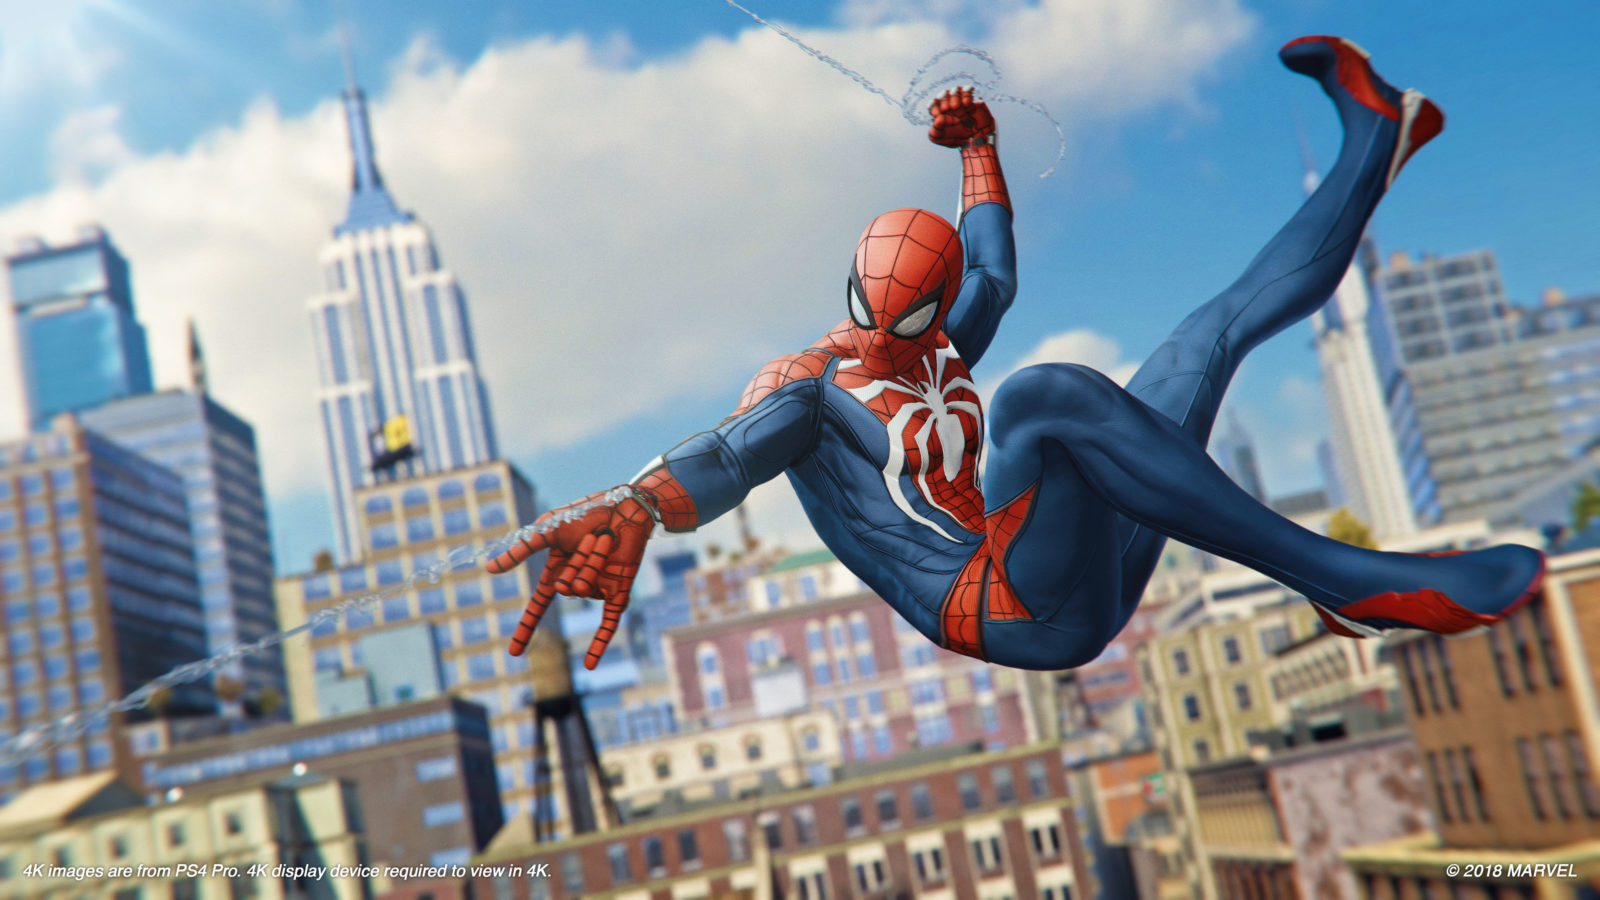 will spider-man come to xbox one, or just ps4? - pinknews · pinknews